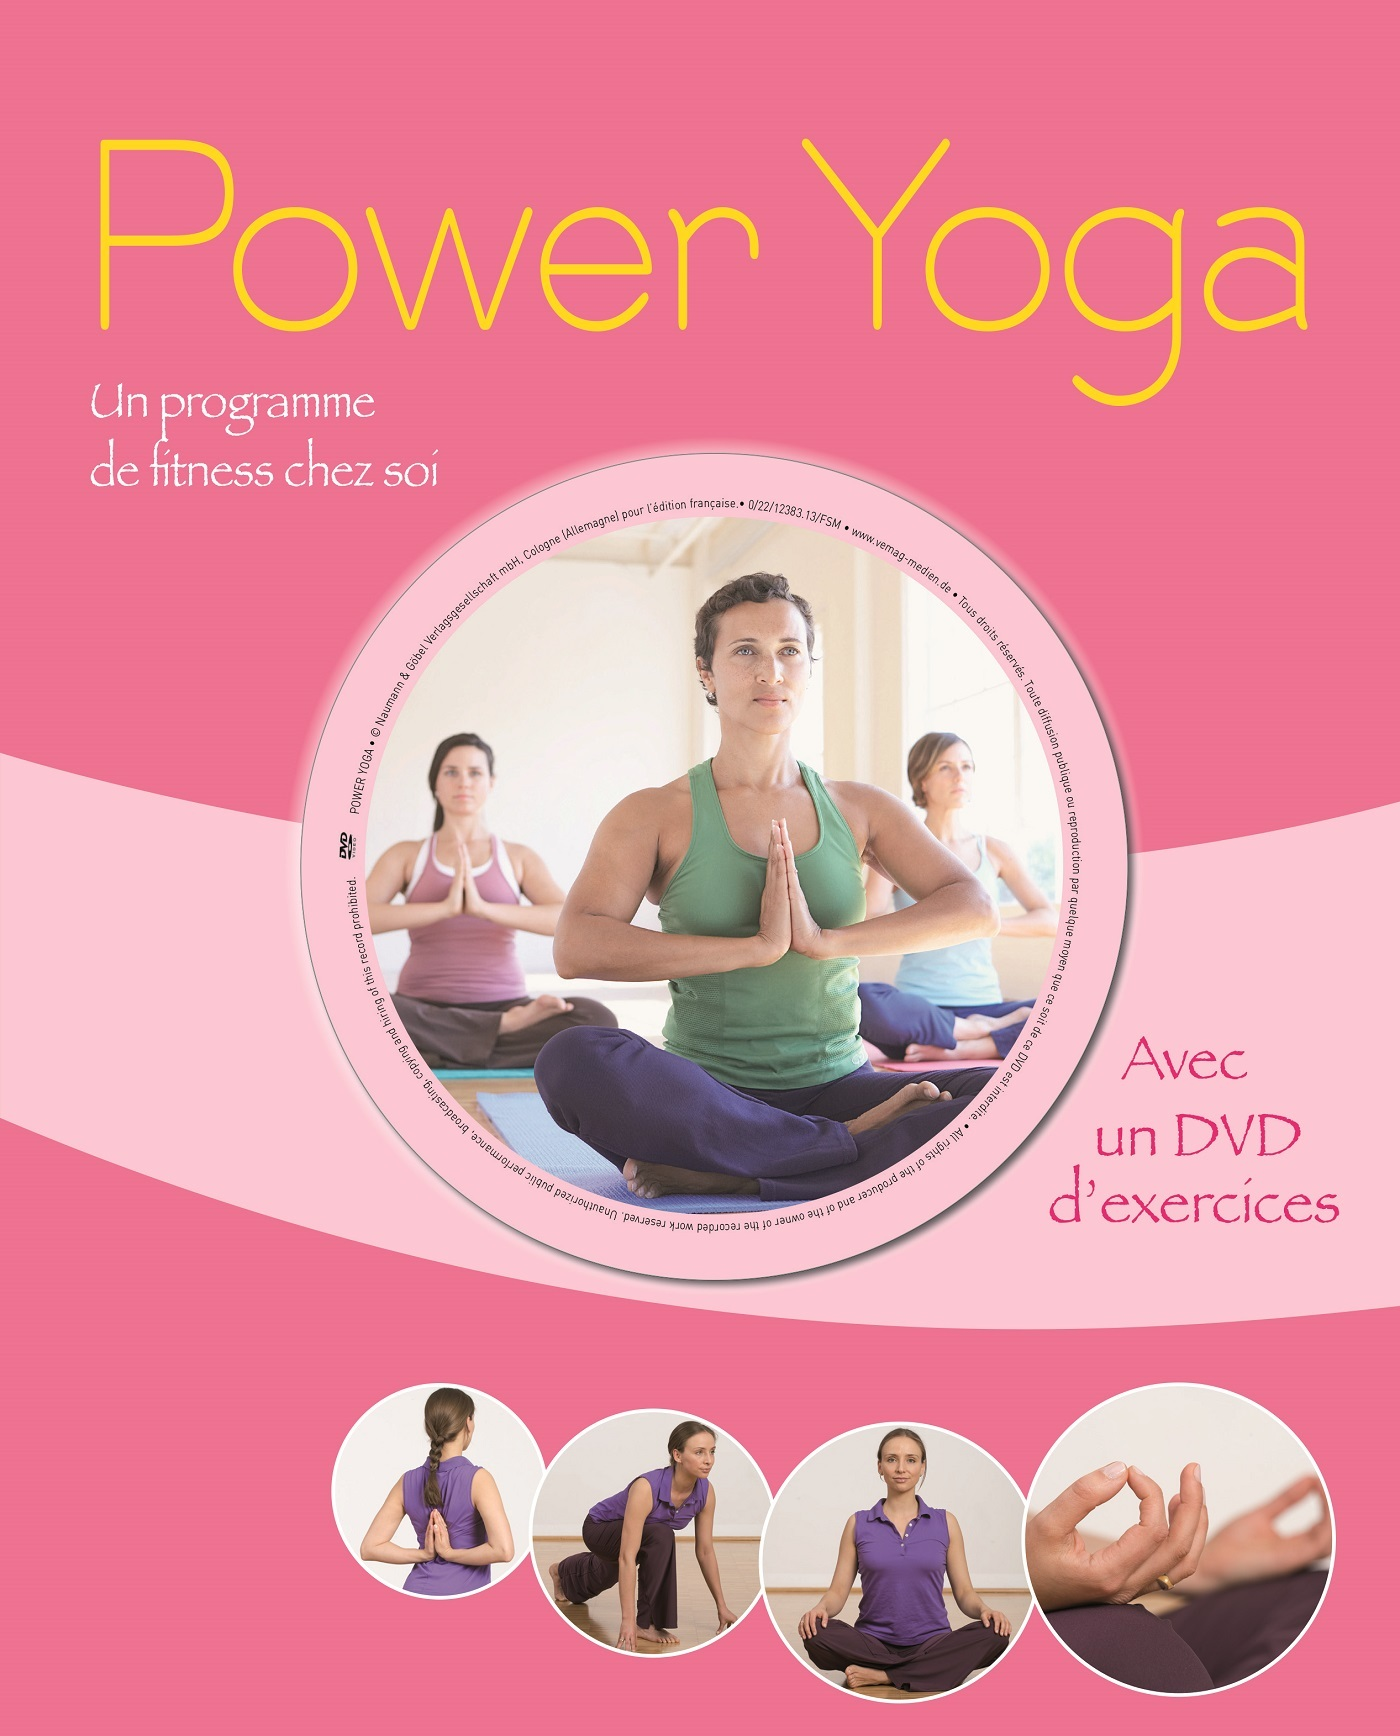 POWER YOGA UN PROGRAMME DE FITNESS CHEZ SOI